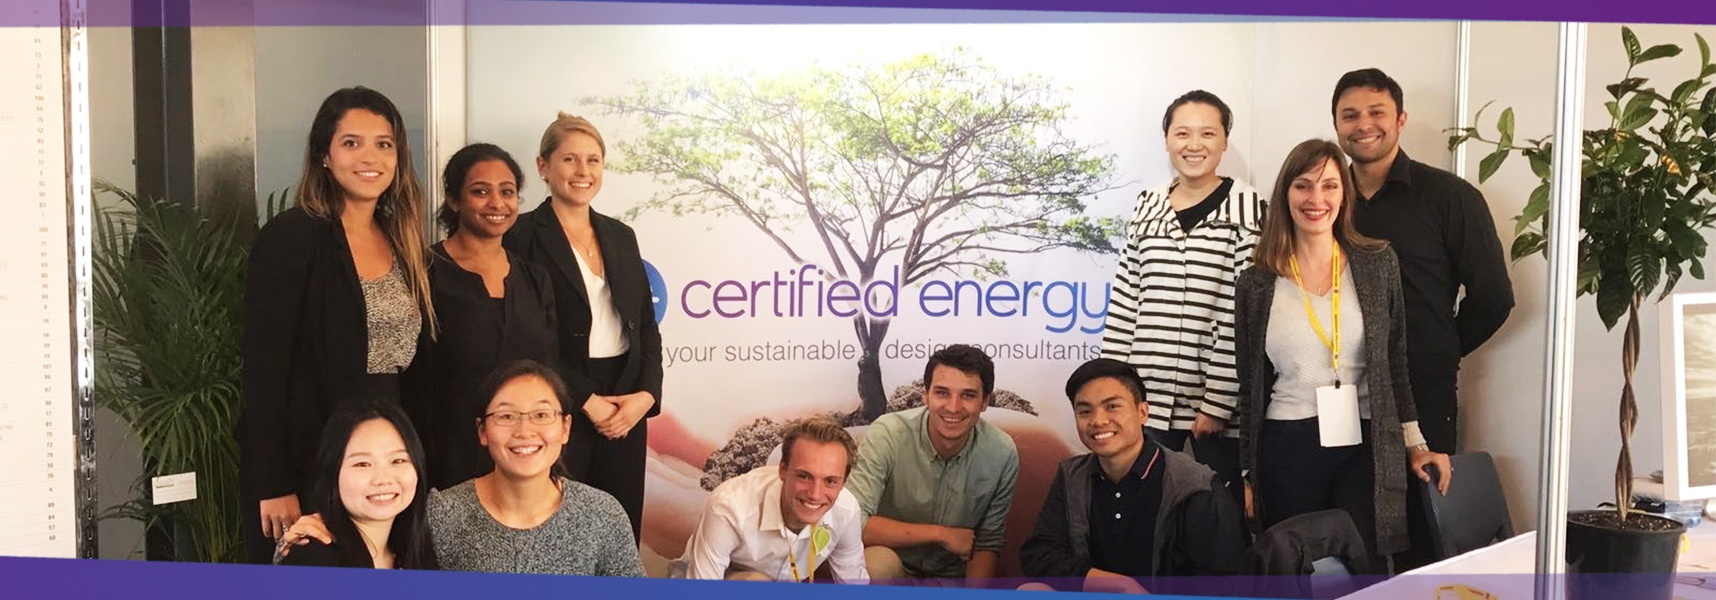 Welcome to the Certified Energy Careers Page